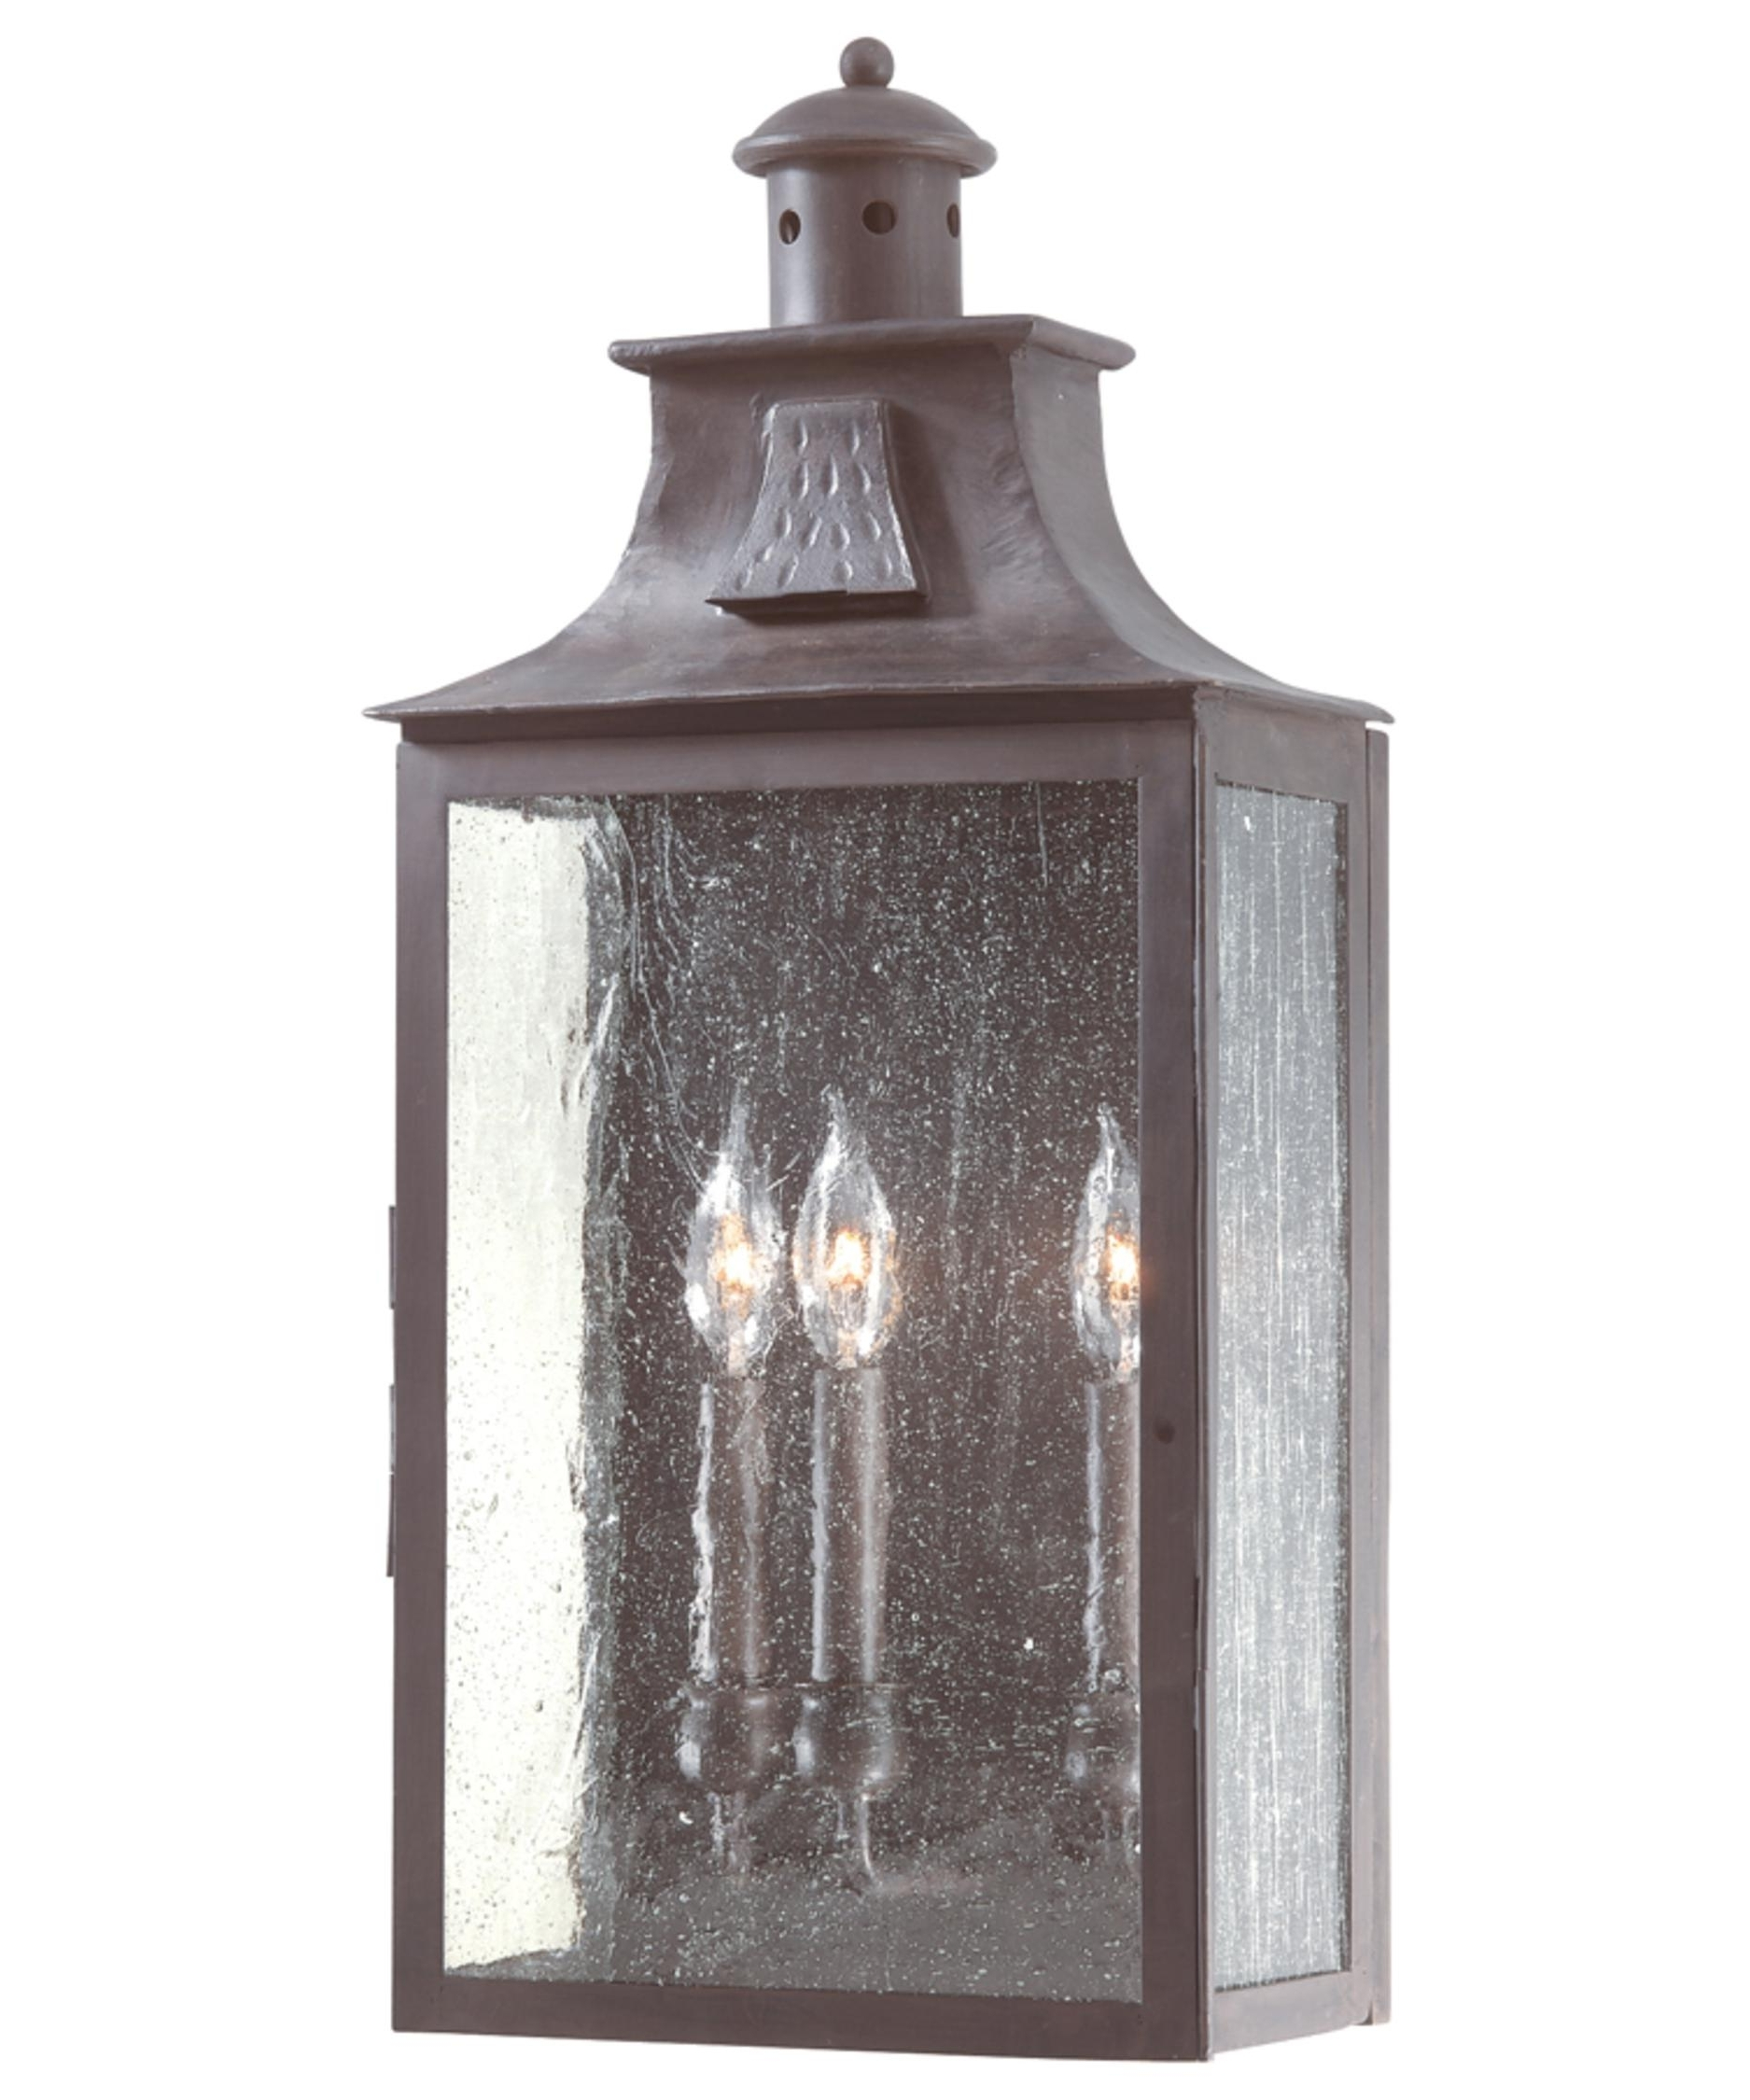 Large Outdoor Wall Lanterns With Regard To Current Mother Ideas: Extra Large Outdoor Wall Lantern, Lighting P5613  (View 11 of 20)